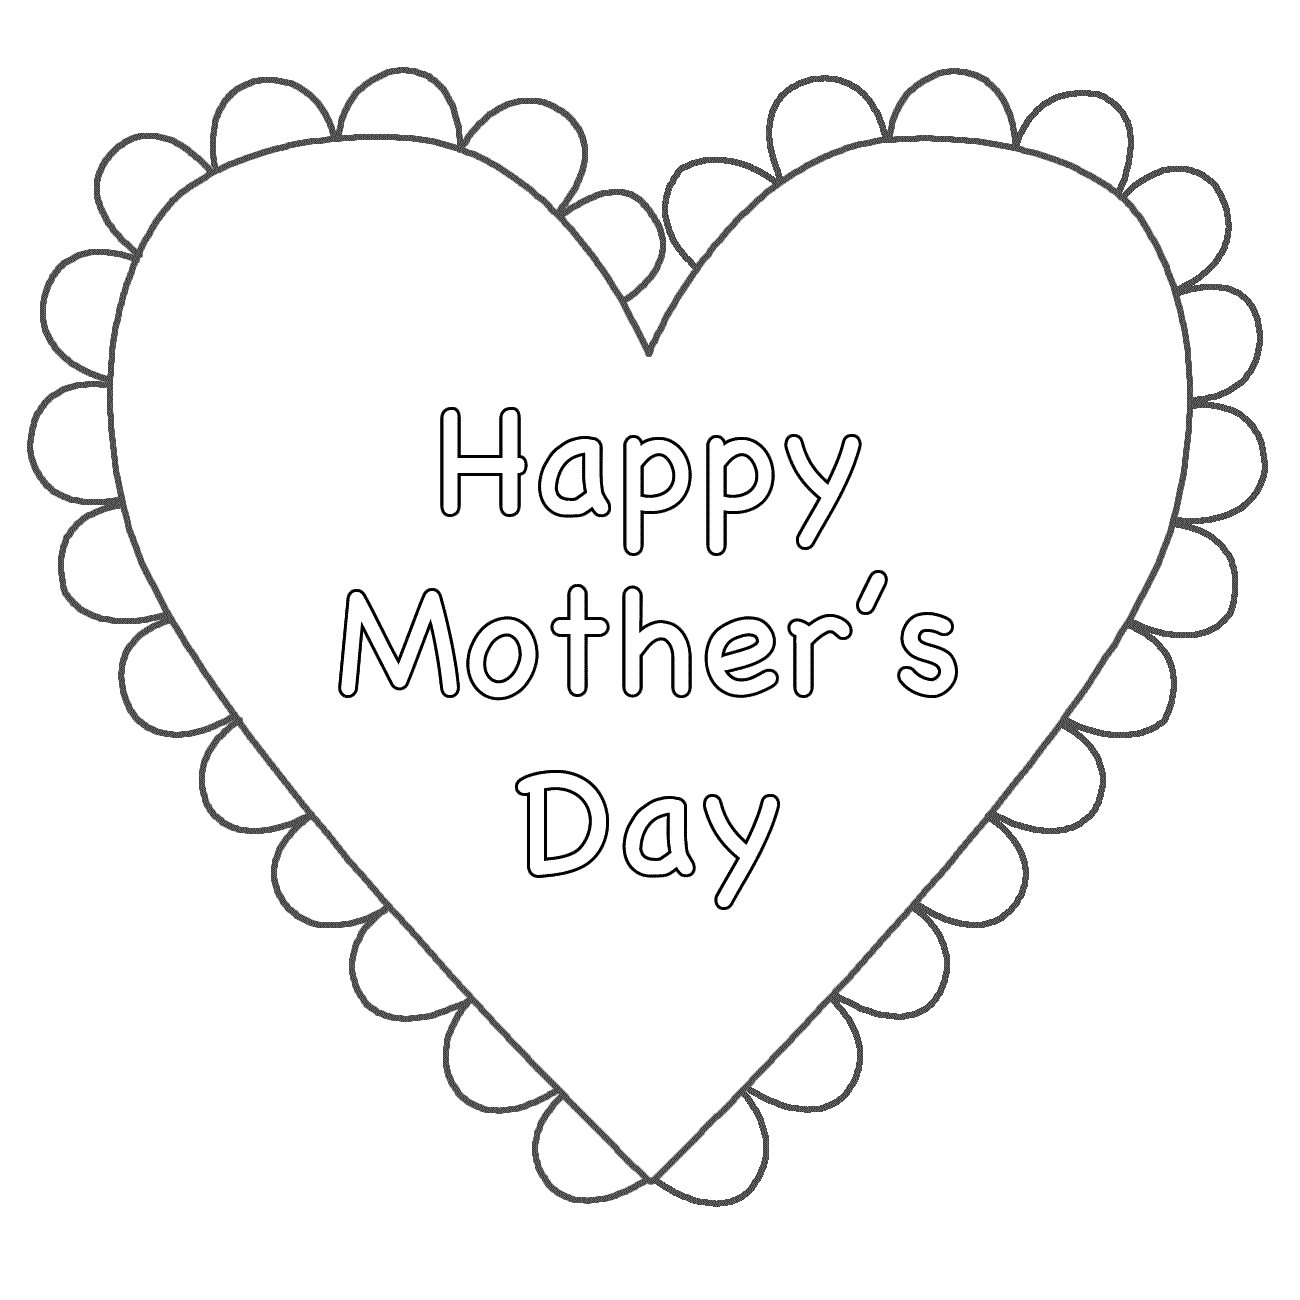 mothers day coloring pages - mothers day coloring pages 107